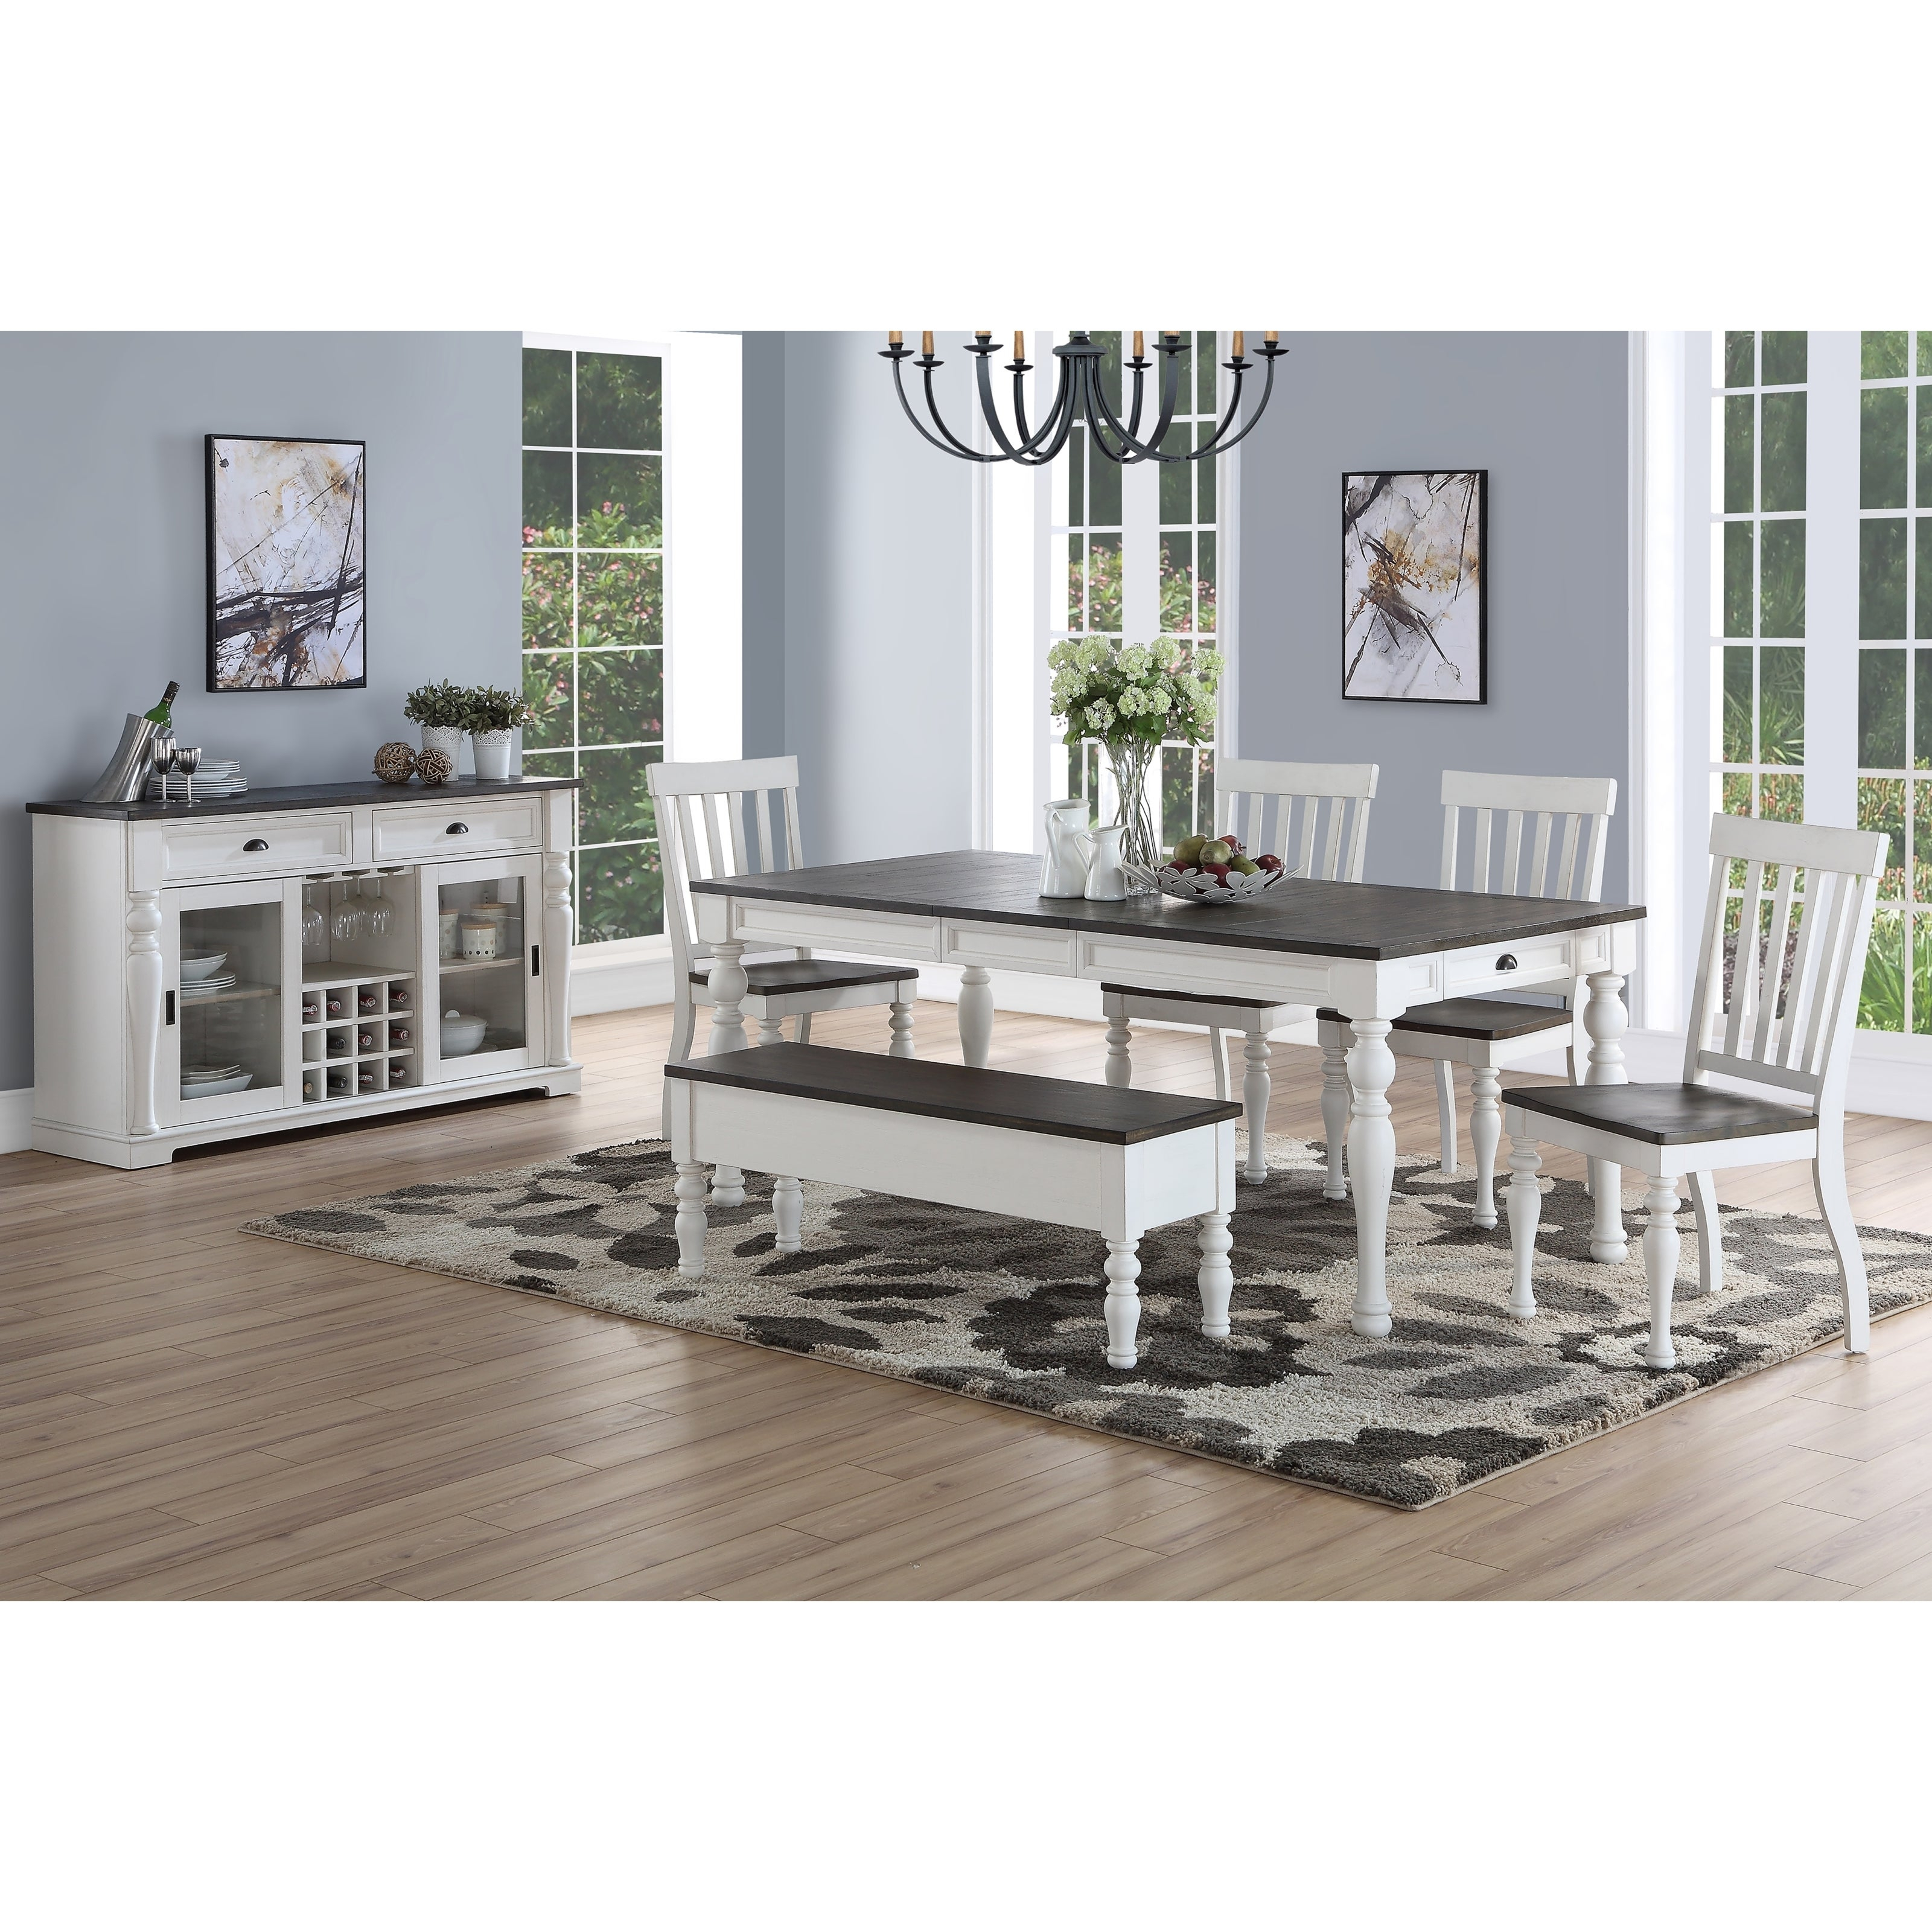 Newest Buy 6 Piece Sets Kitchen & Dining Room Sets Online At Overstock In Osterman 6 Piece Extendable Dining Sets (Set Of 6) (#7 of 20)